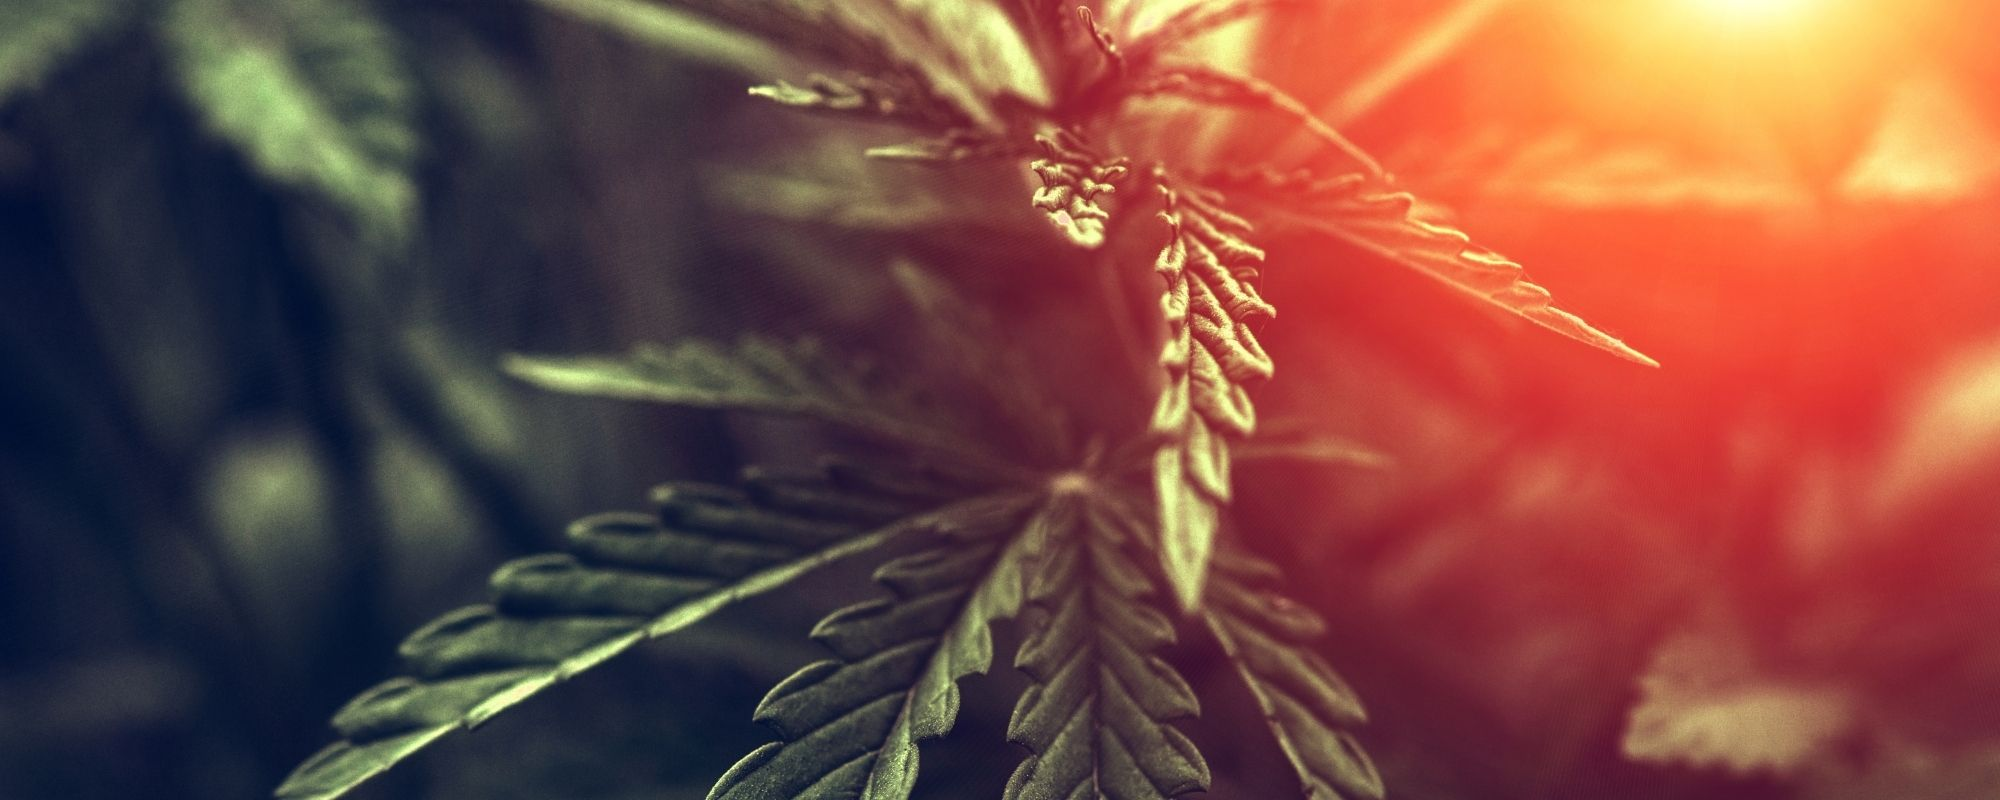 Commission on Narcotic Drugs Removes Cannabis From the Schedule IV Category